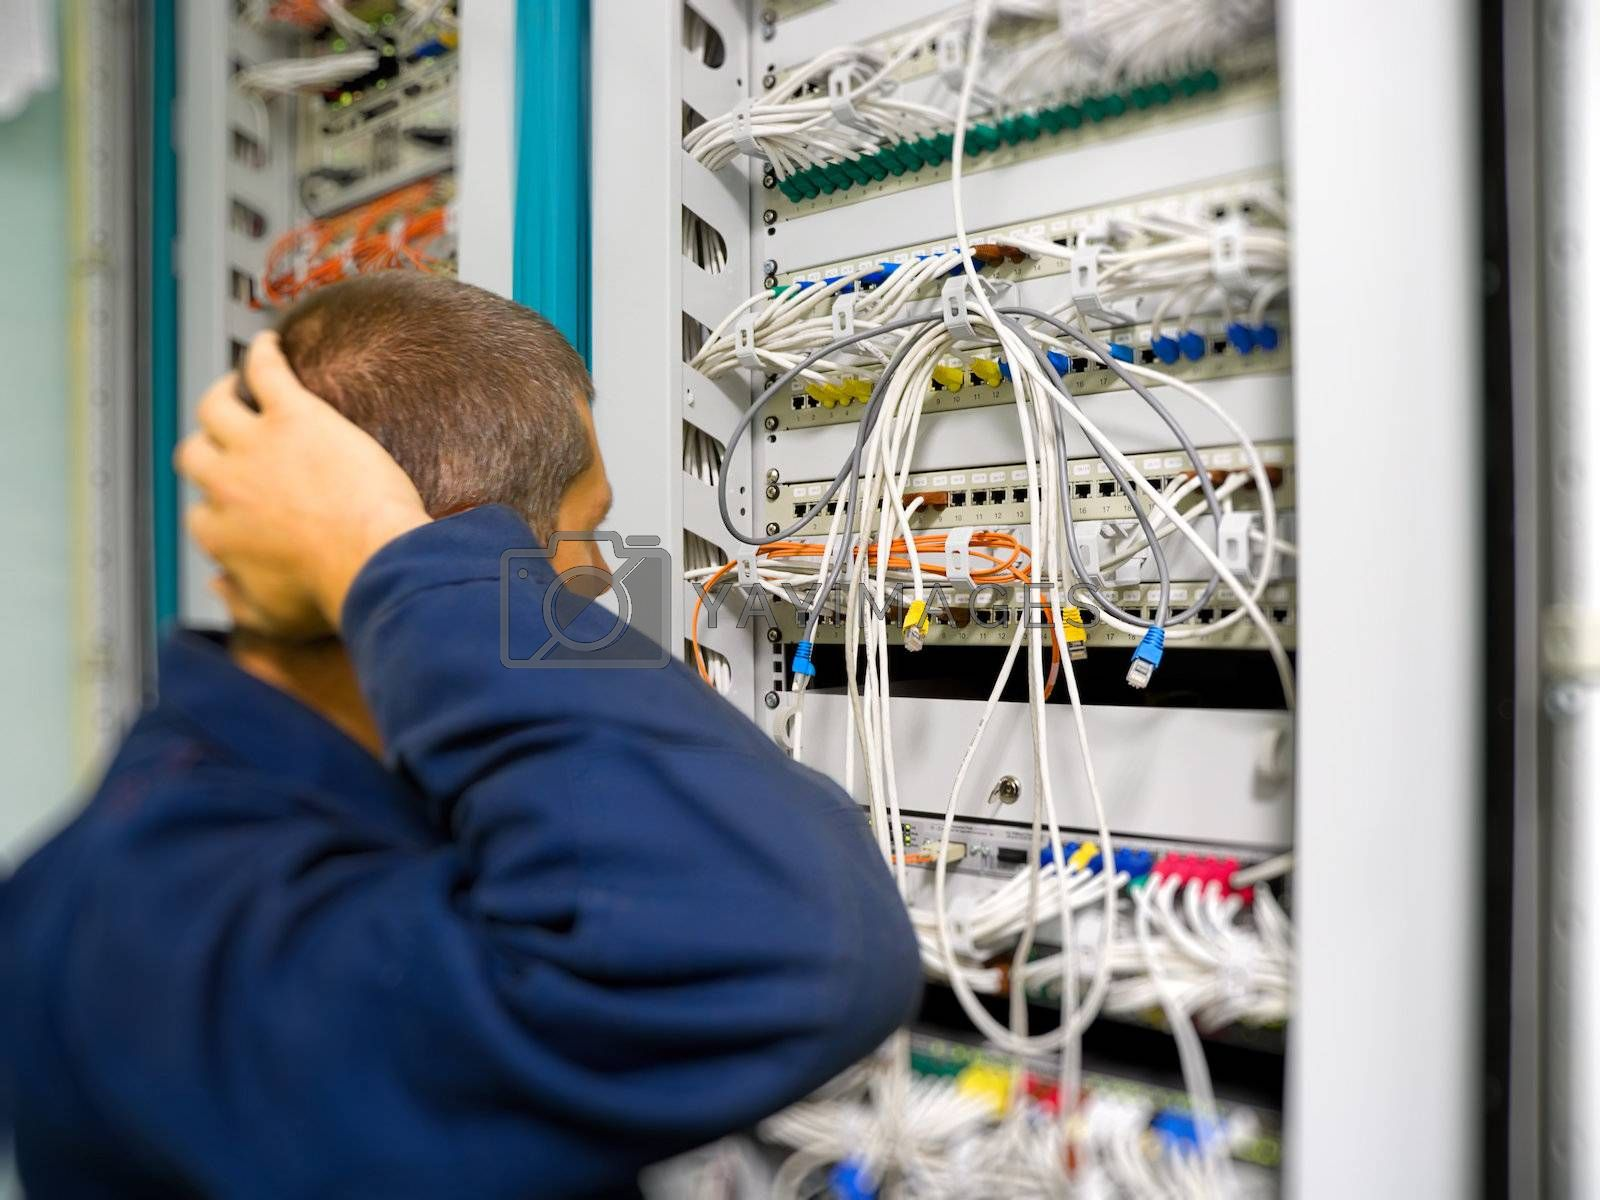 Network engineer solve the problem